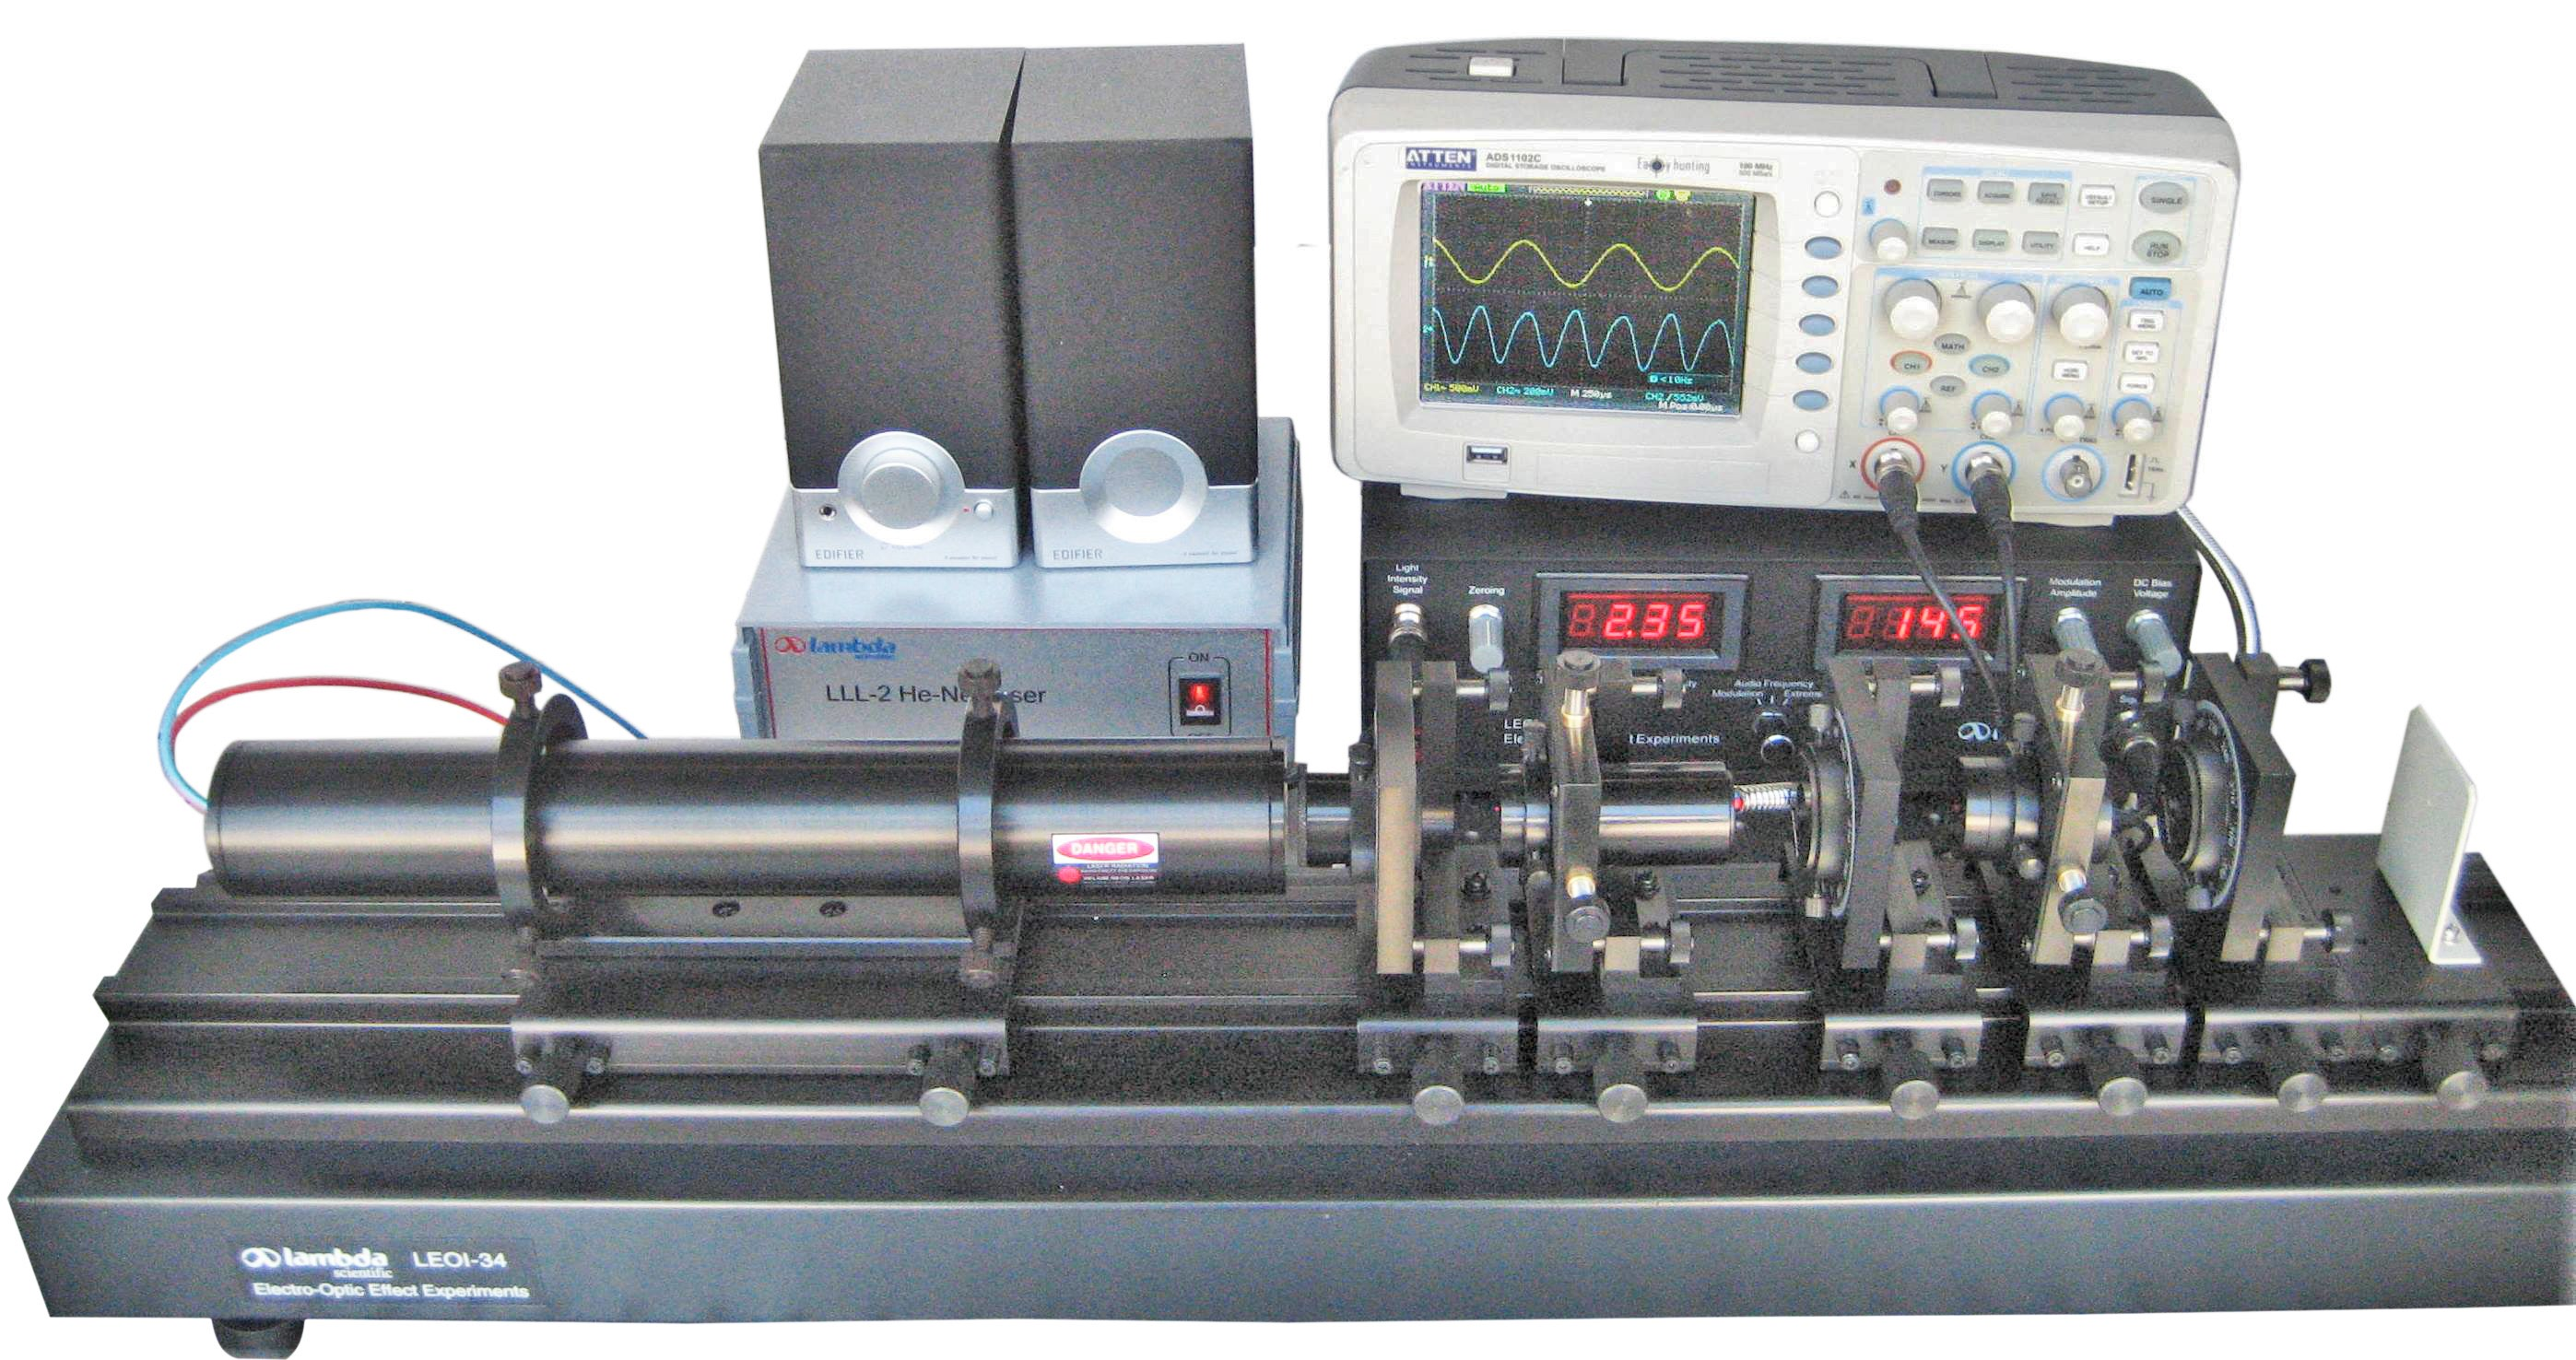 LEOI-34 Experimental System for Electro-Optic Modulation